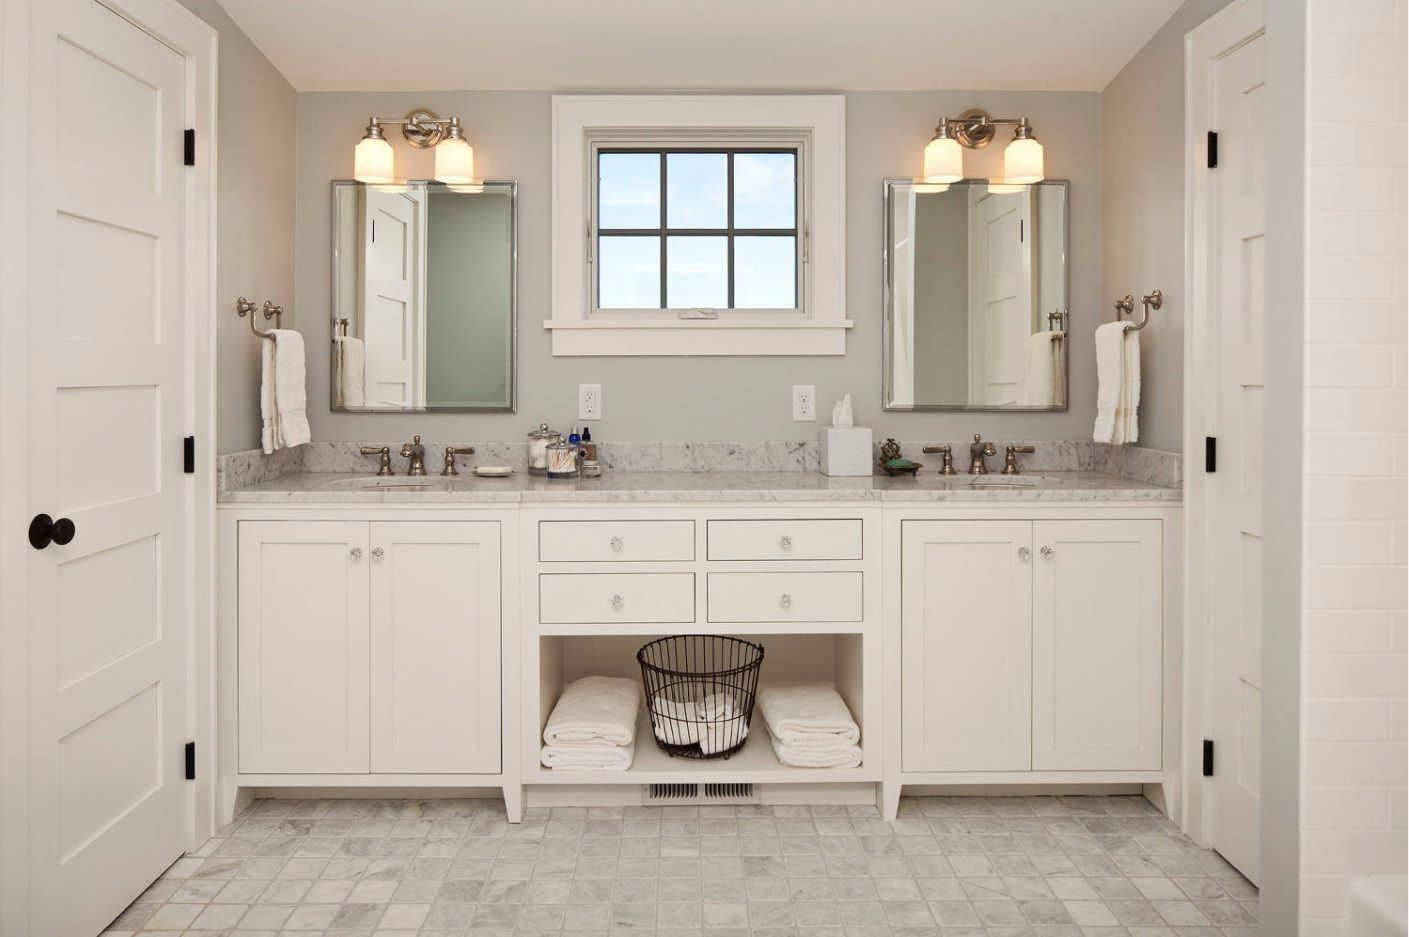 Jack and jill bathroom interior design ideas small for Jack and jill bathroom vanity